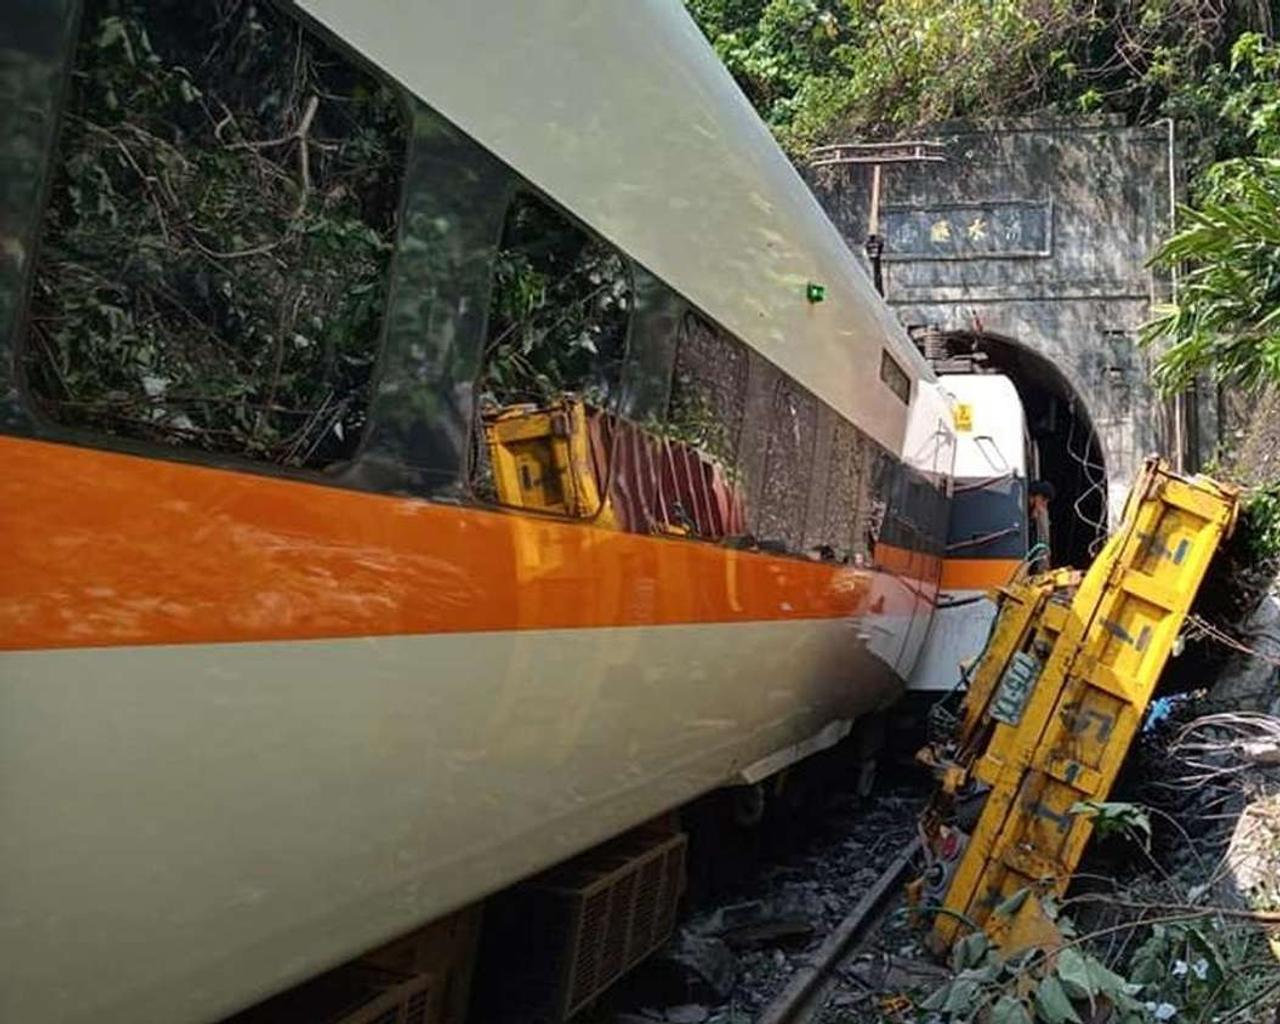 The truck driver who caused a deadly train accident in Taiwan has apologized.